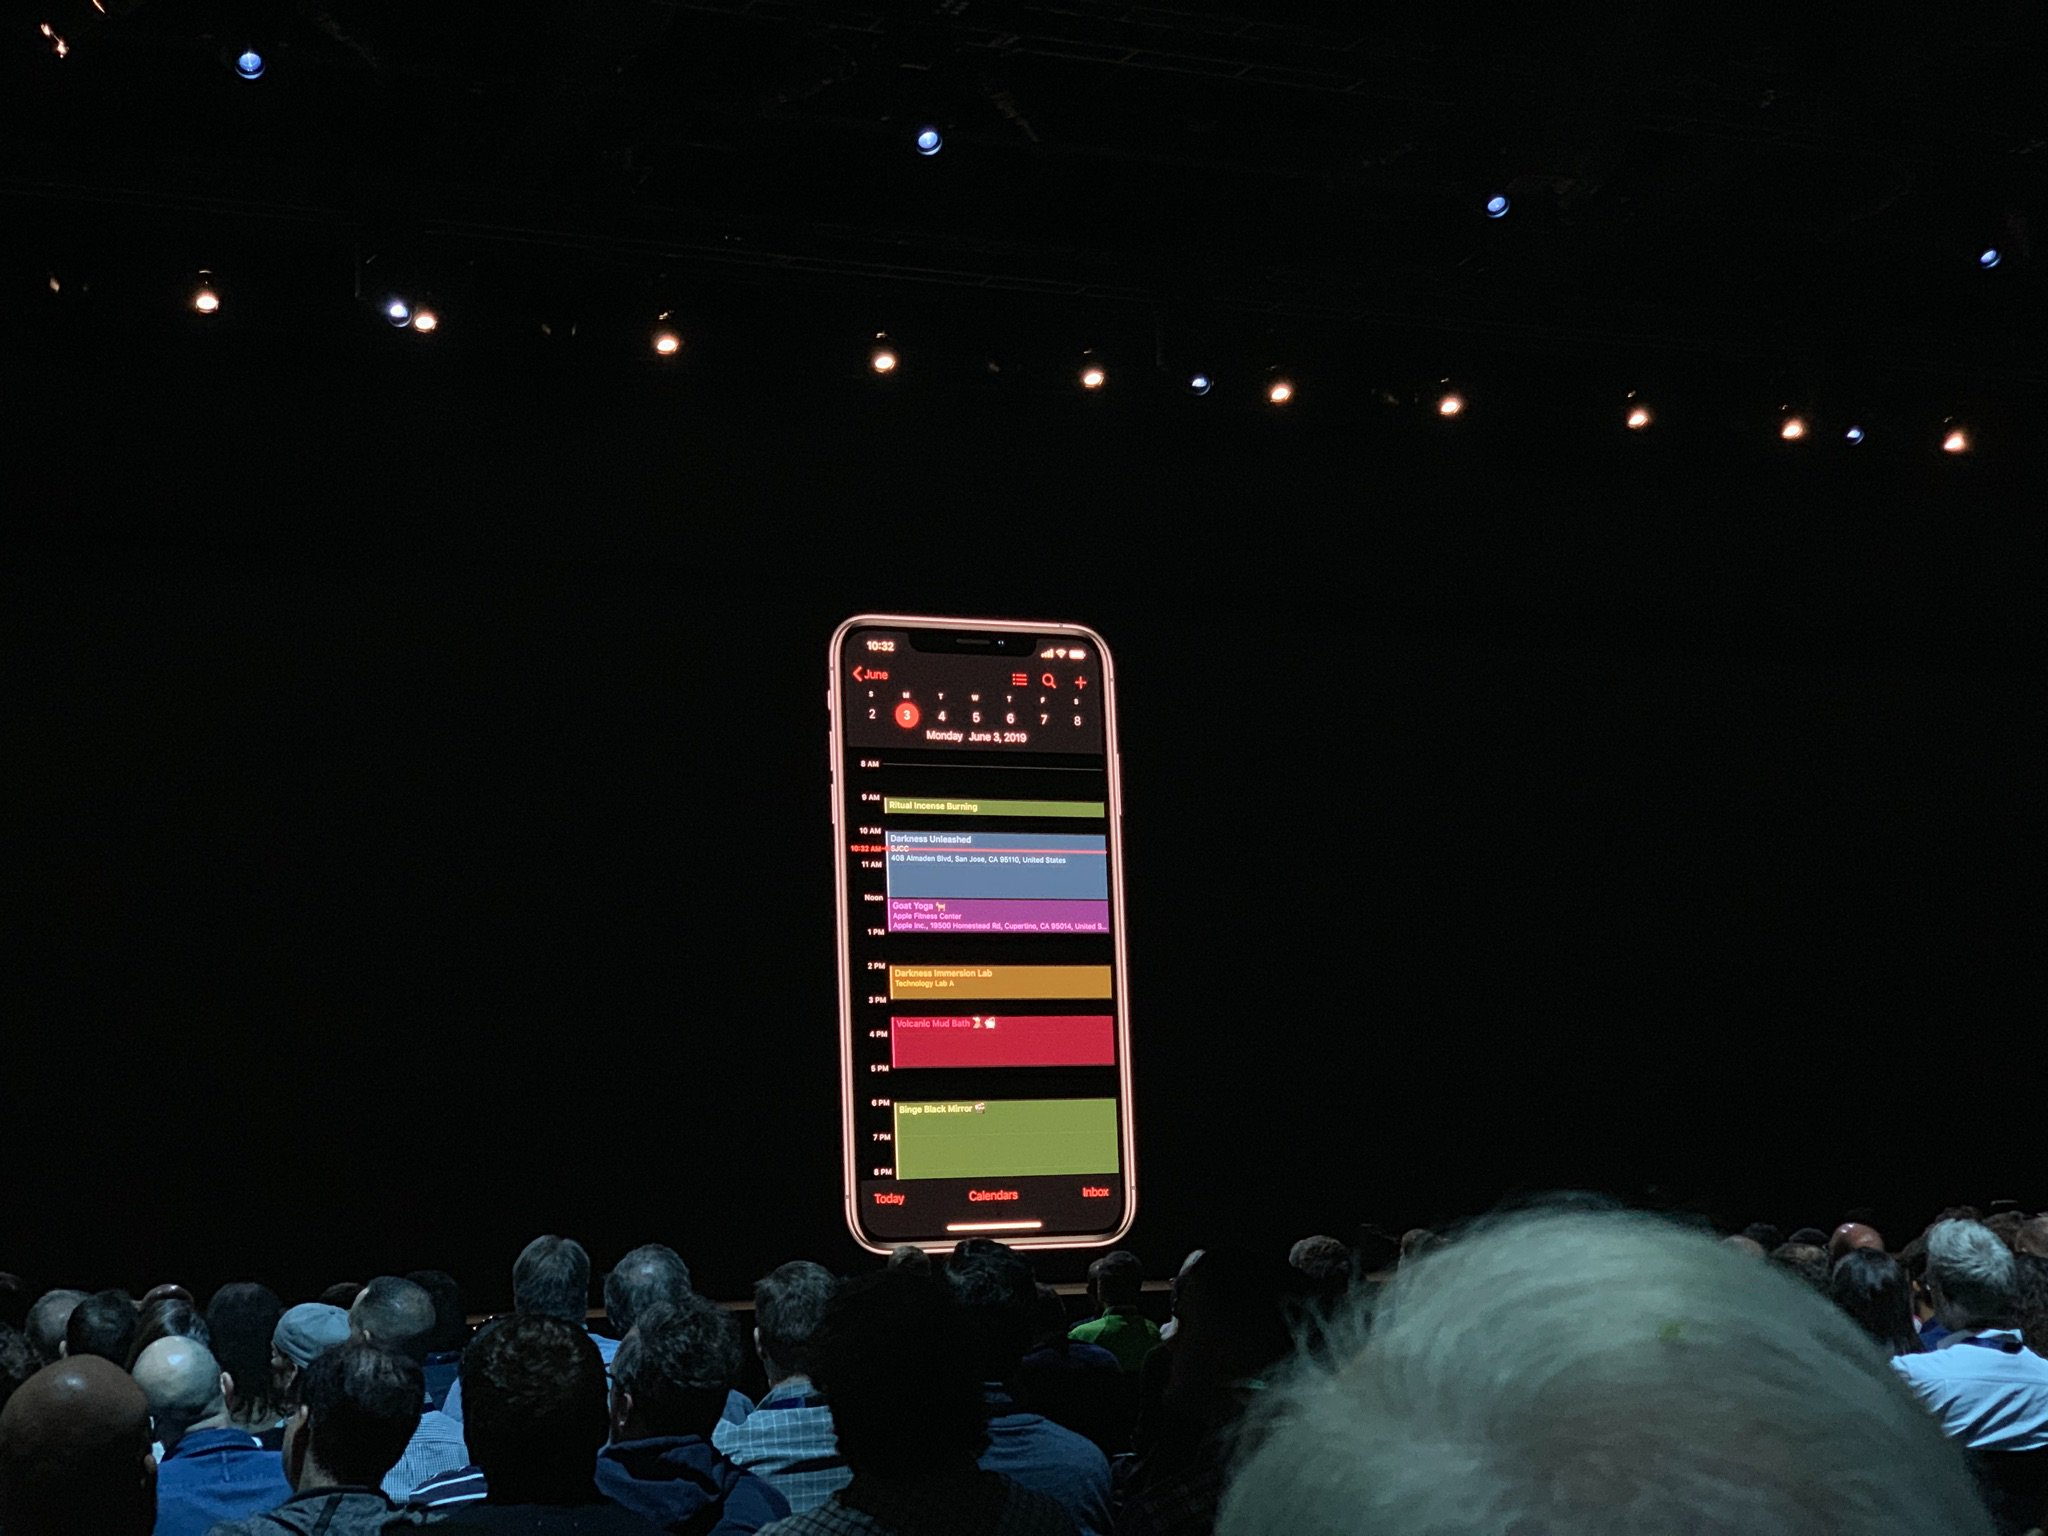 Our first look at Dark Mode in iOS13.